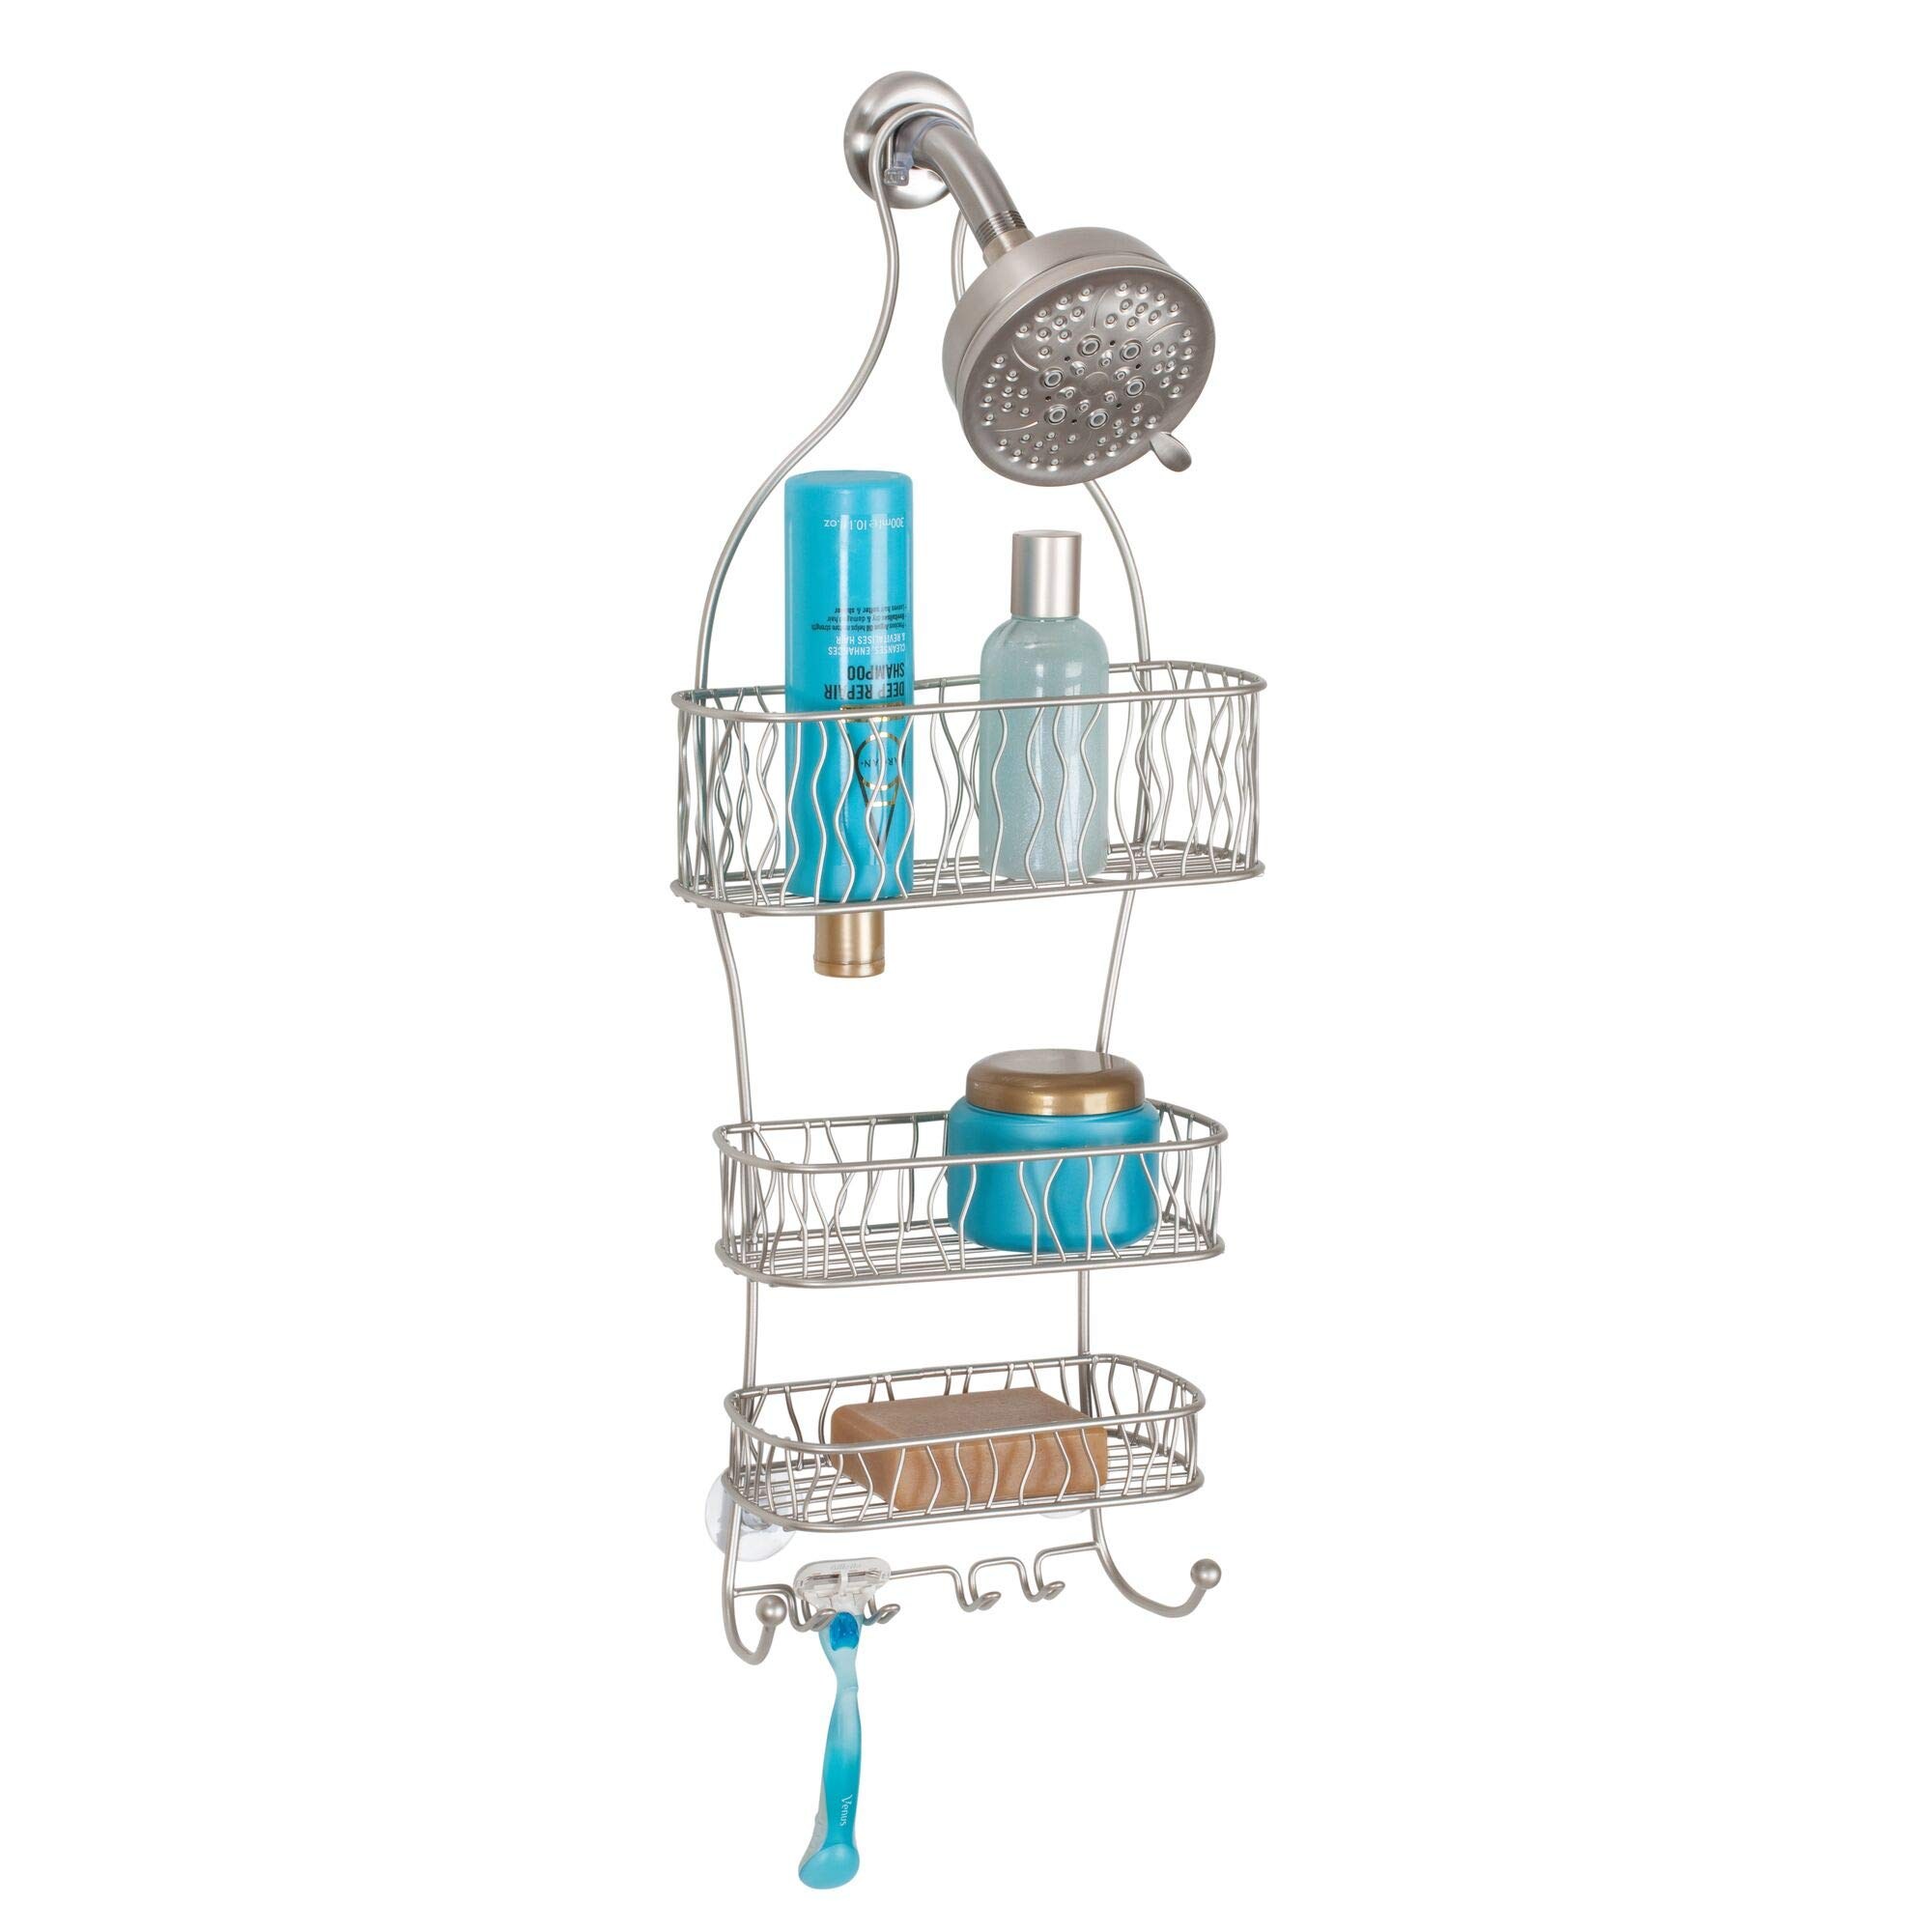 InterDesign Squiggle Hanging Shower Caddy – Bathroom Storage Shelves for Shampoo, Conditioner and Soap, Satin